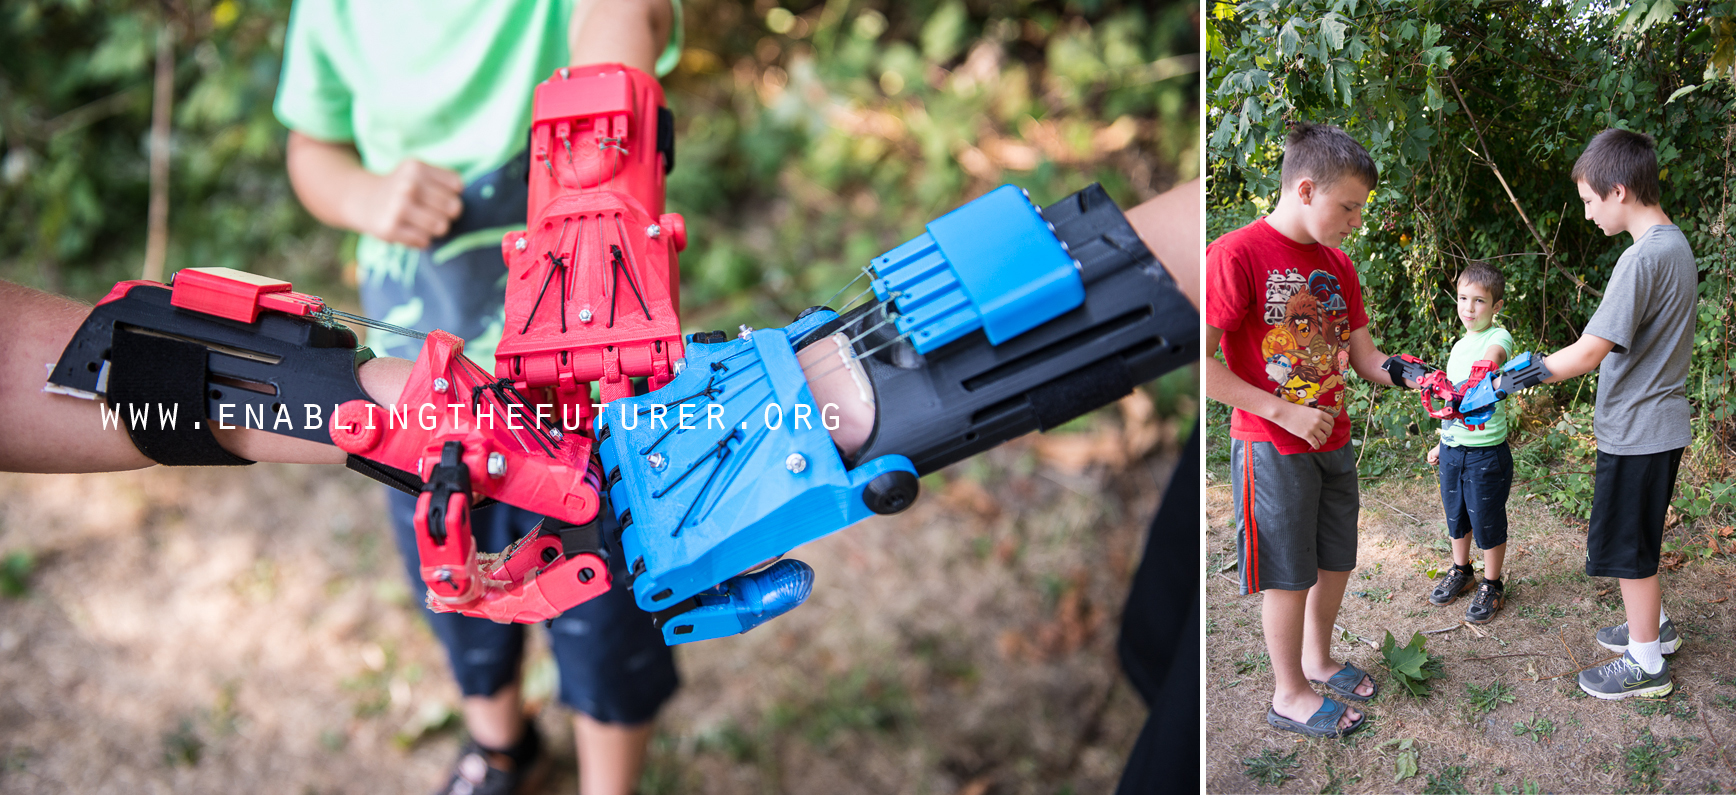 3D printed prosthetic hands from e-nable